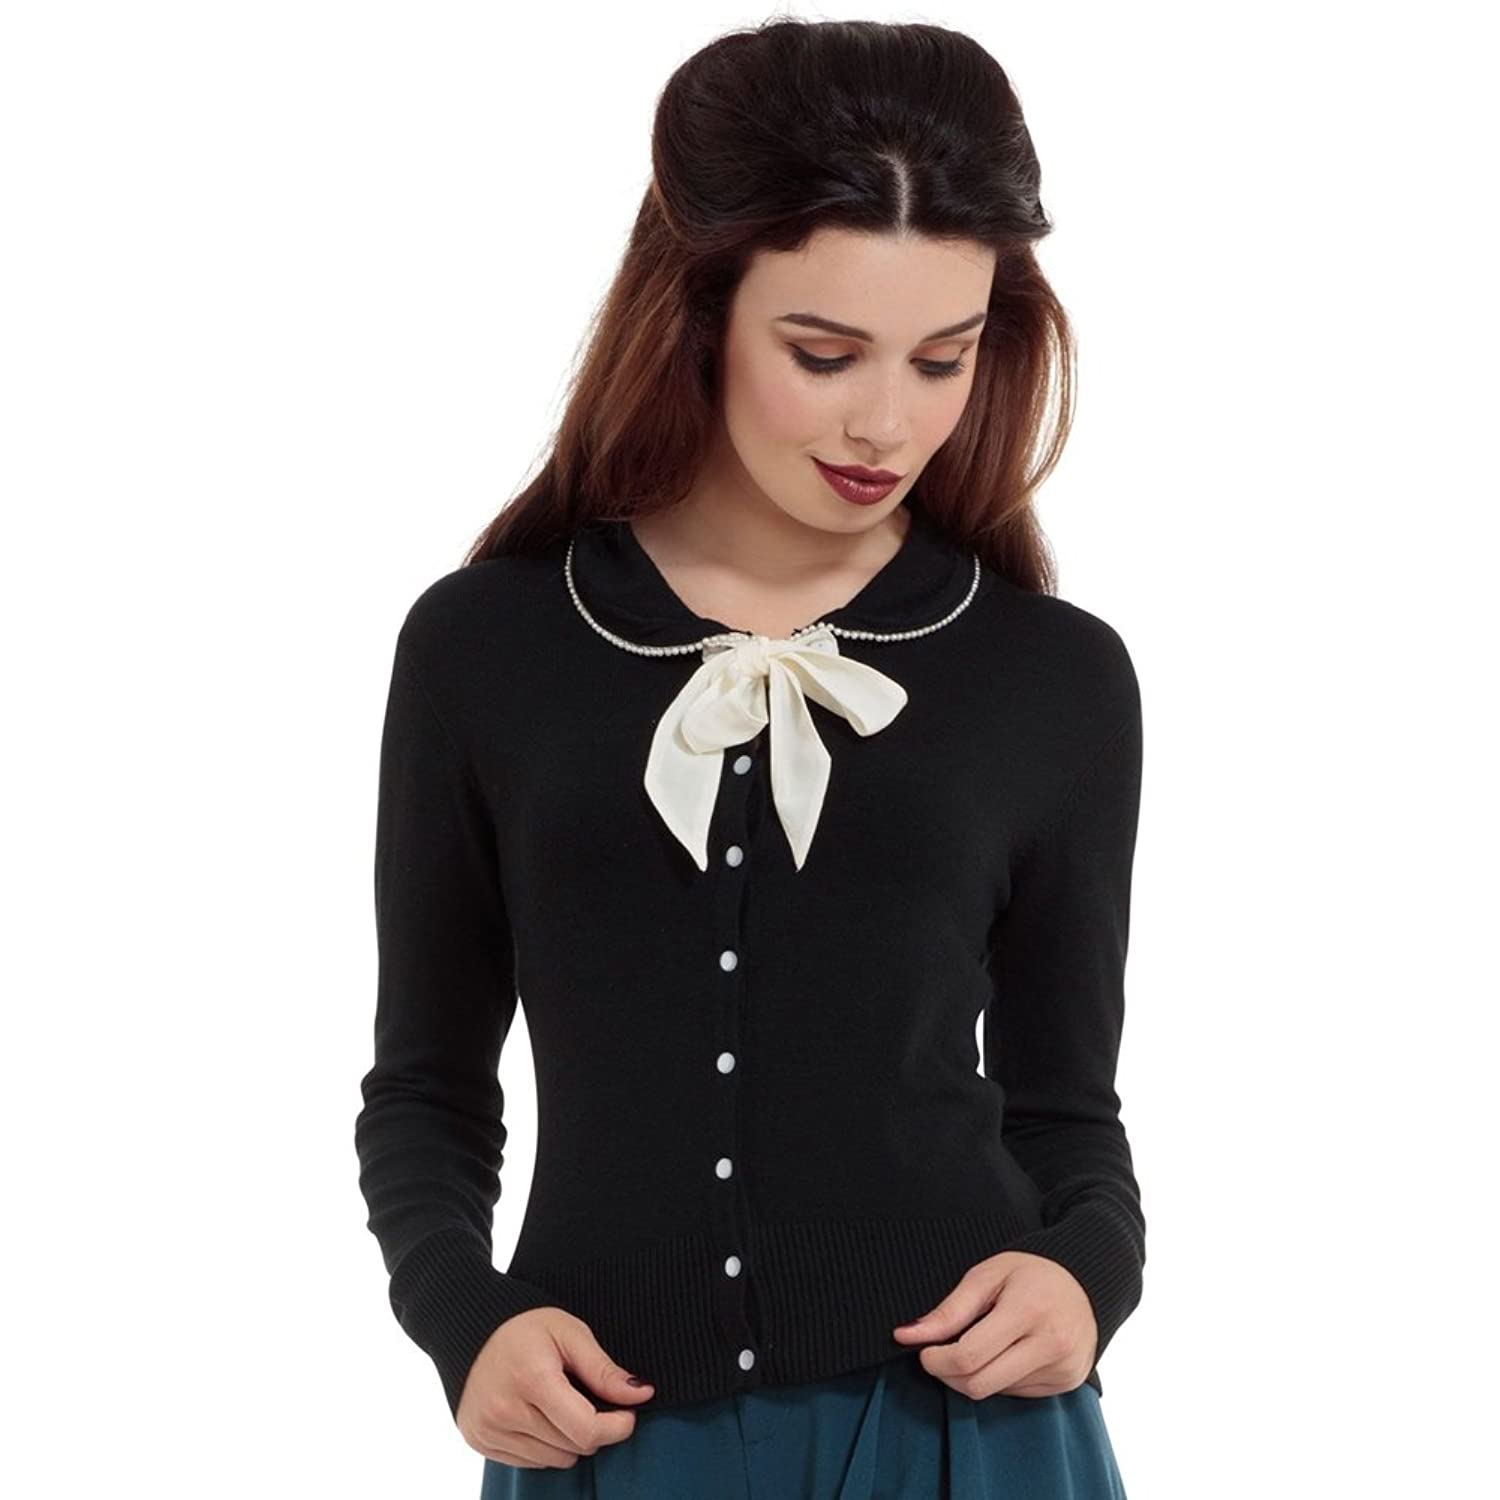 1950s Style Sweaters, Crop Cardigans, Twin Sets Womens Voodoo Vixen Katy Pearl Trim Cardigan With Removable Front Bow Black $52.95 AT vintagedancer.com